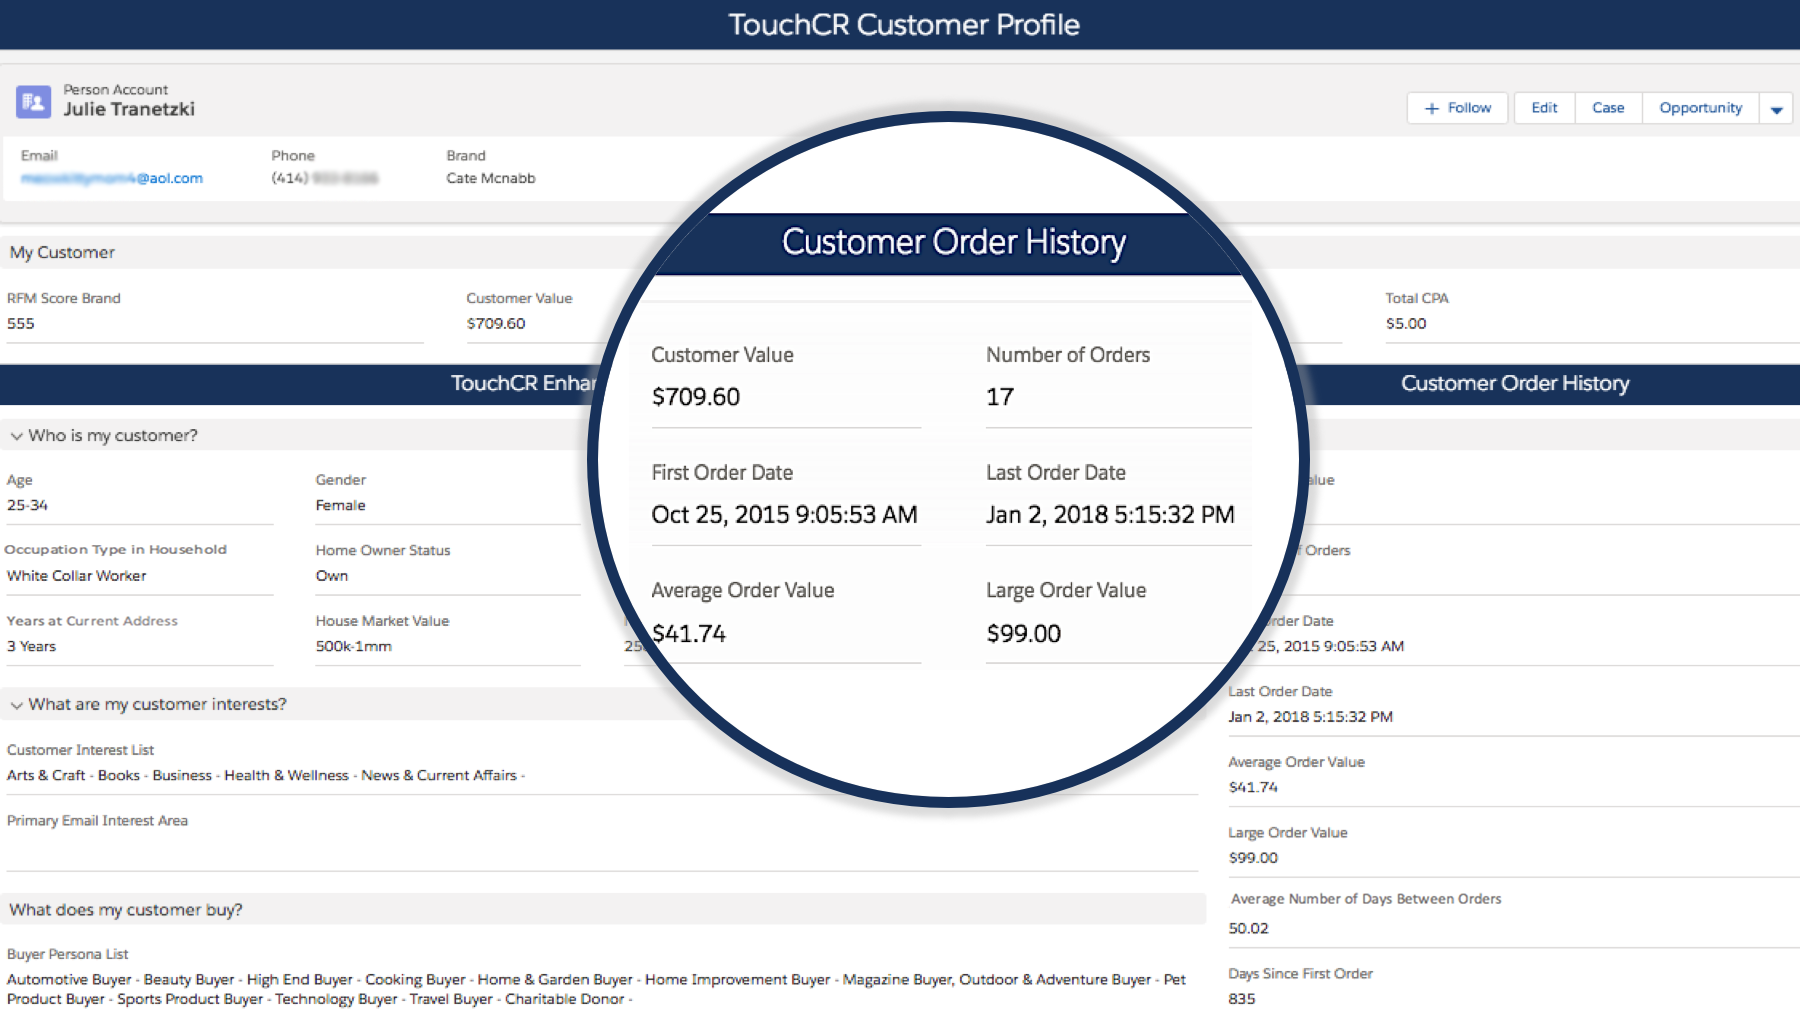 15 Financial Metrics Calculated Real-Time Based on Customer Buying Behaviour